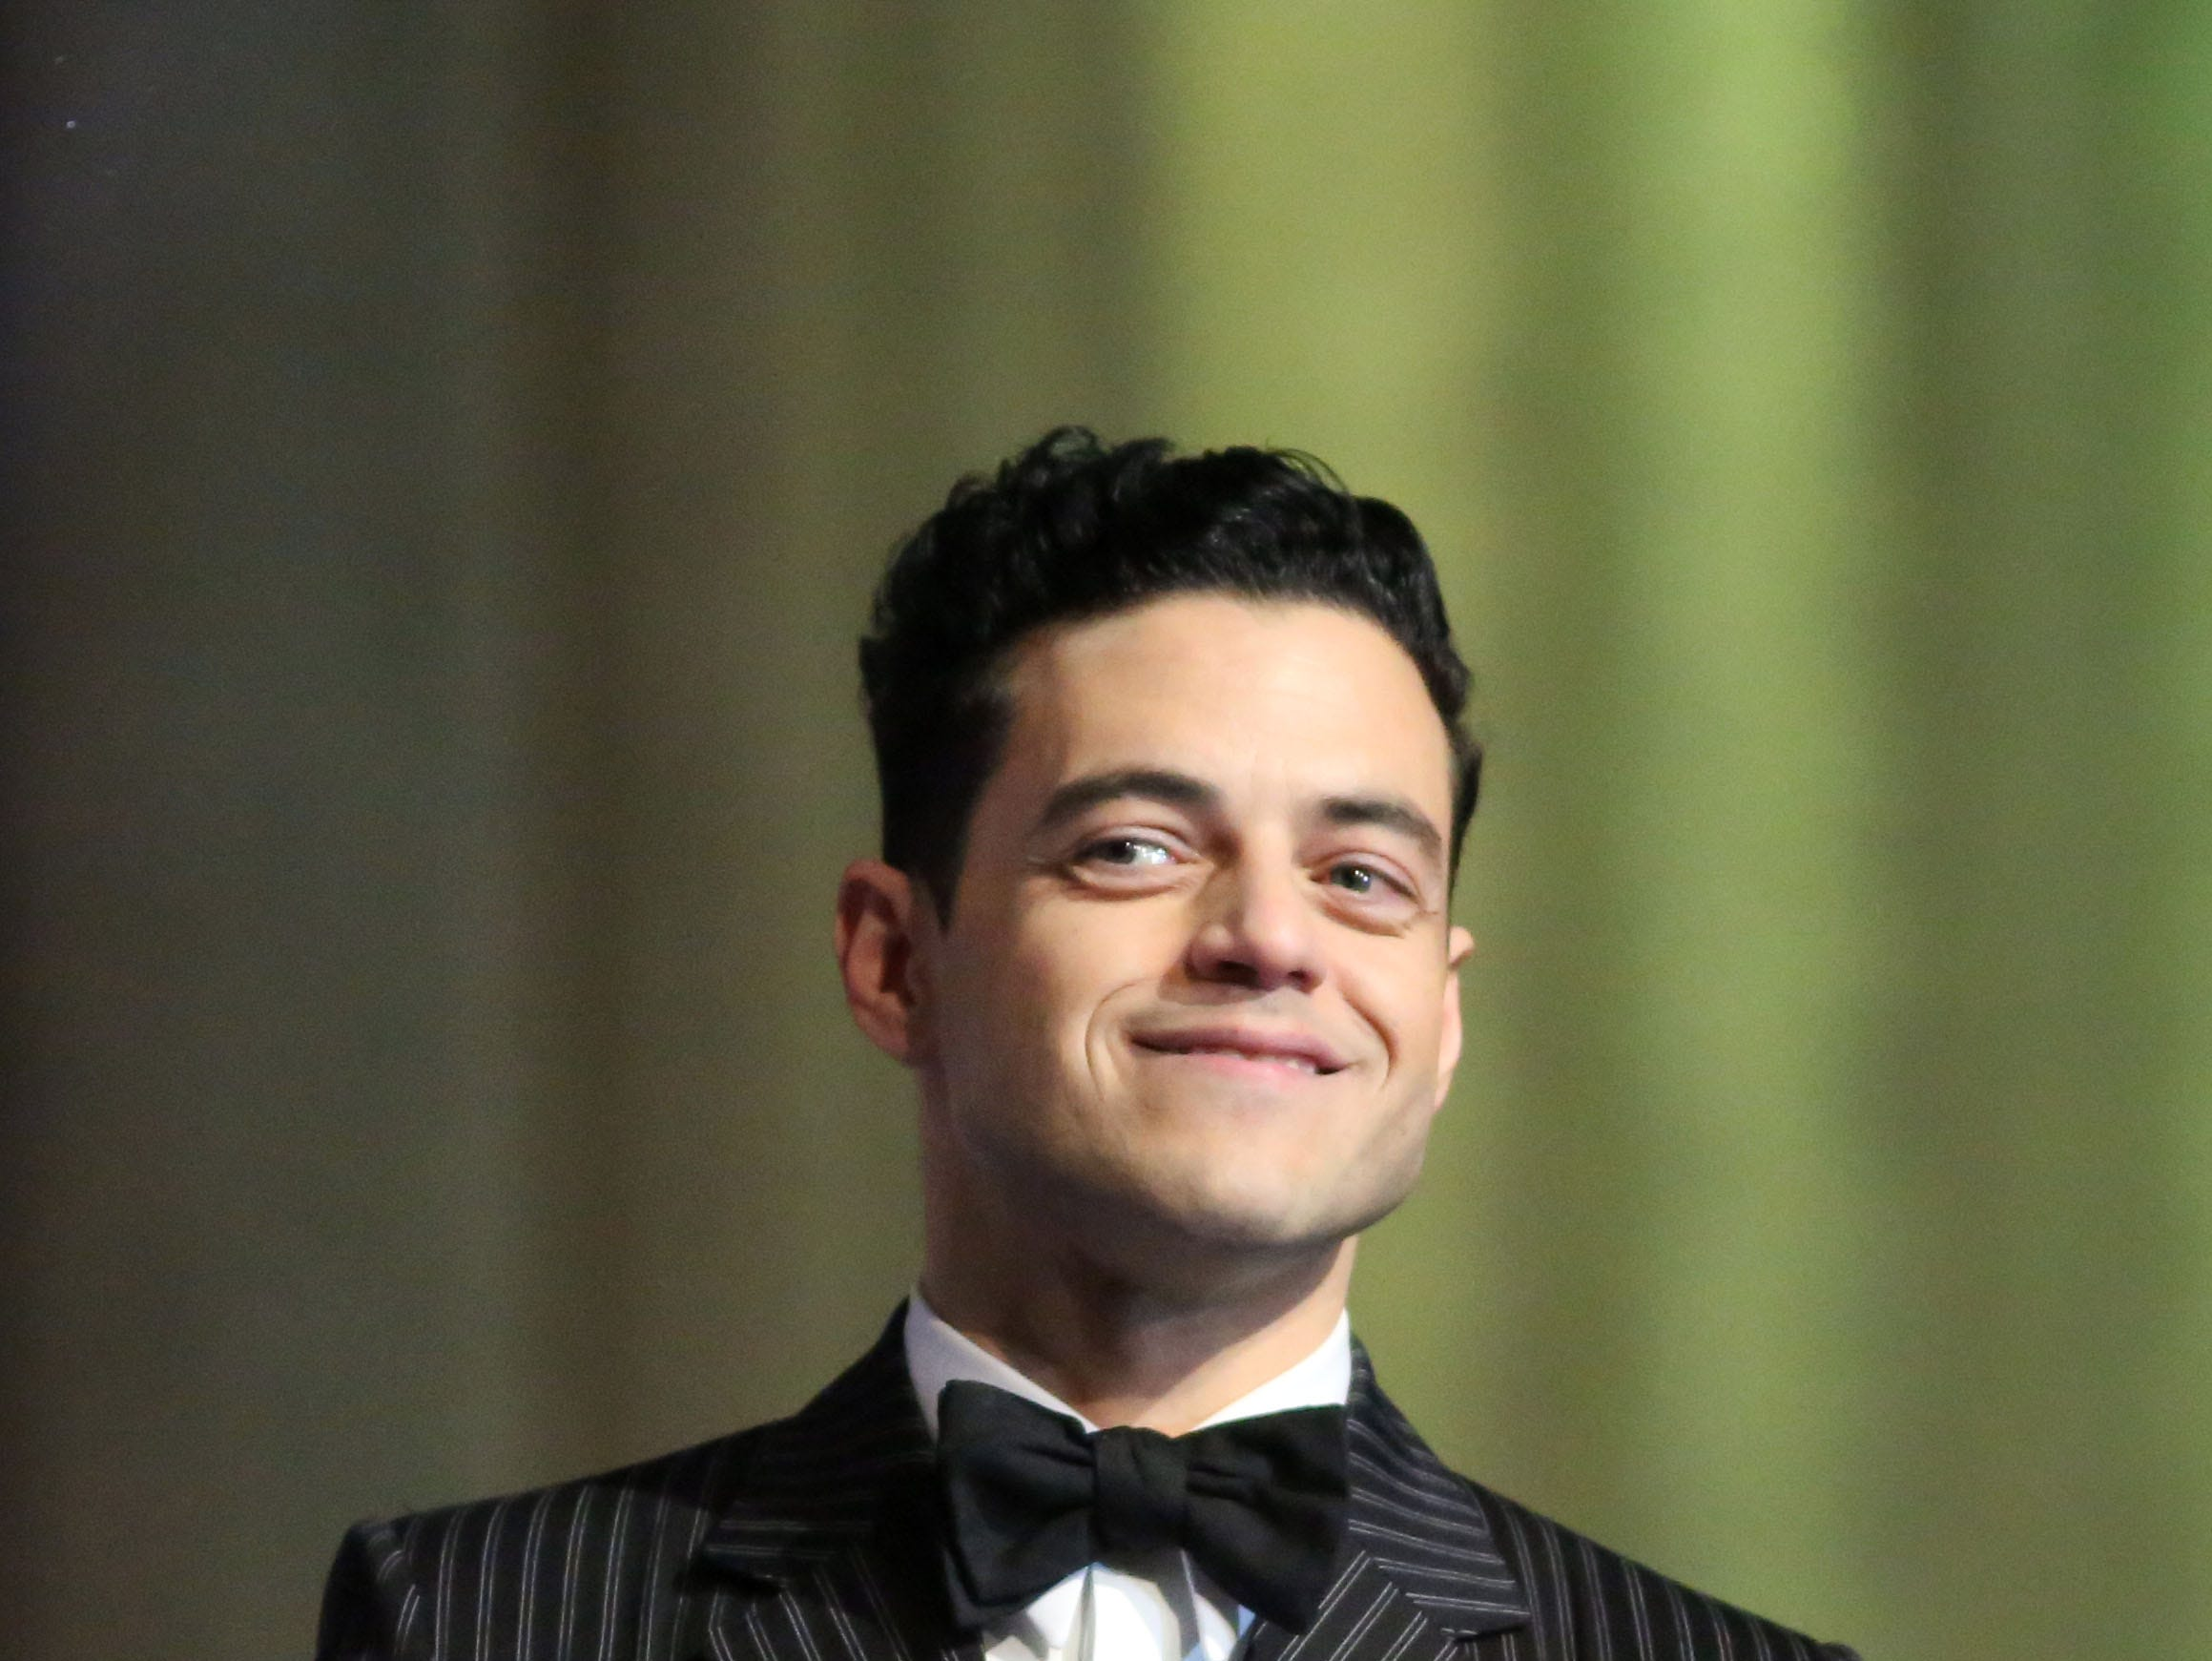 Rami Malek gets the Breakthrough Performance Award for Bohemian Rhapsody on Thursday, January 3, 2018 at the Palm Springs International Film Festival Gala in Palm Springs.